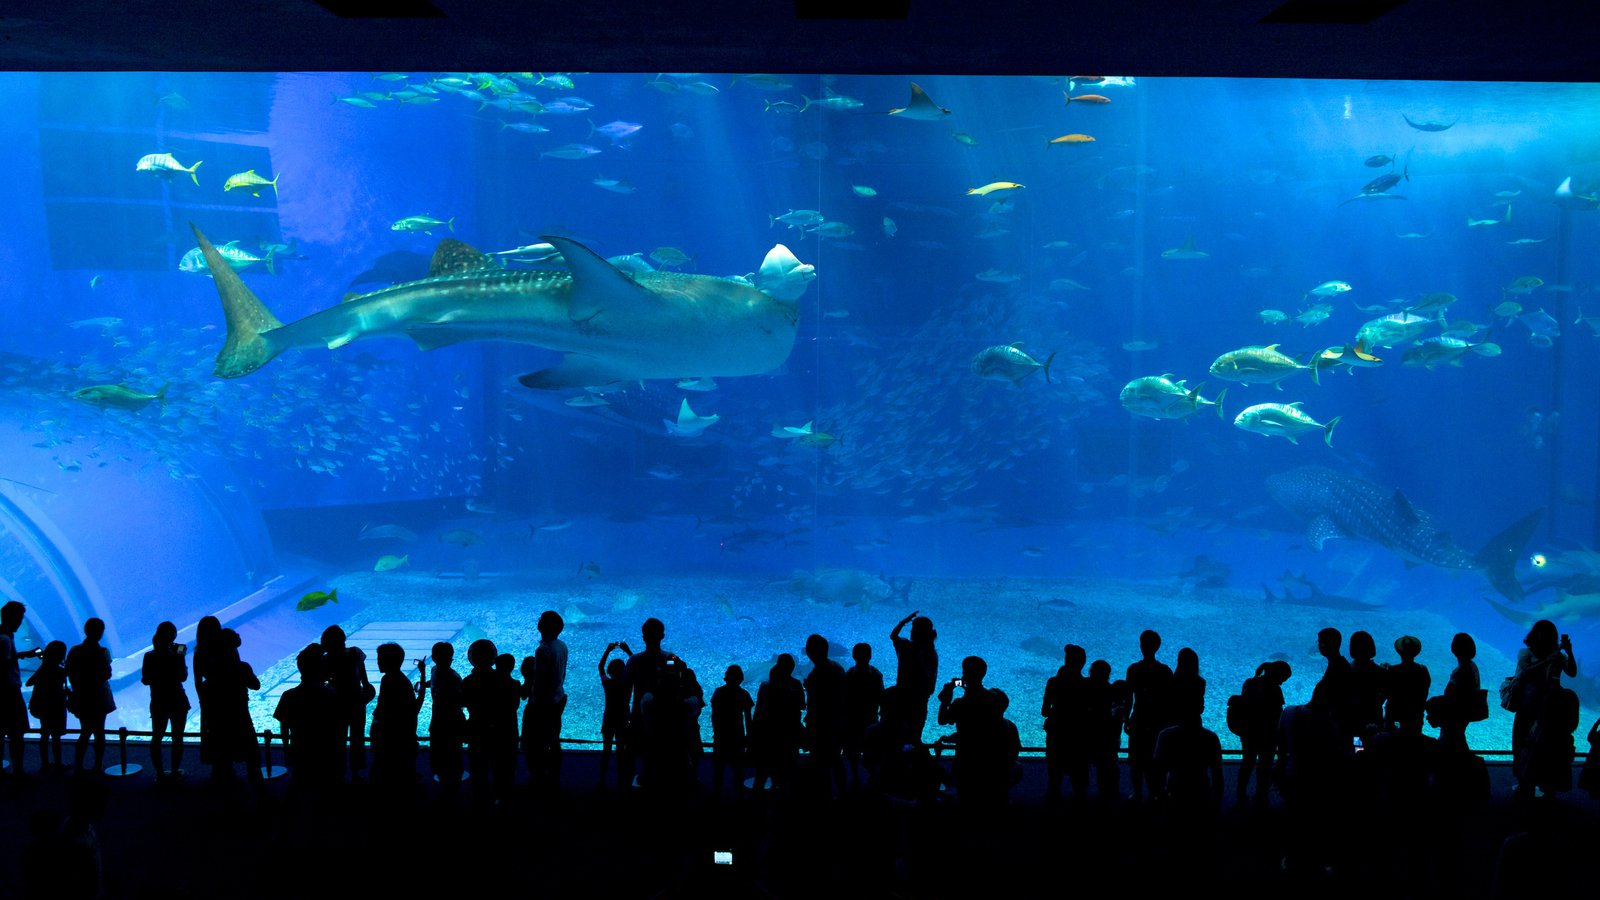 Okinawa Churaumi Aquarium featuring marine life and interior views as well as a large group of people